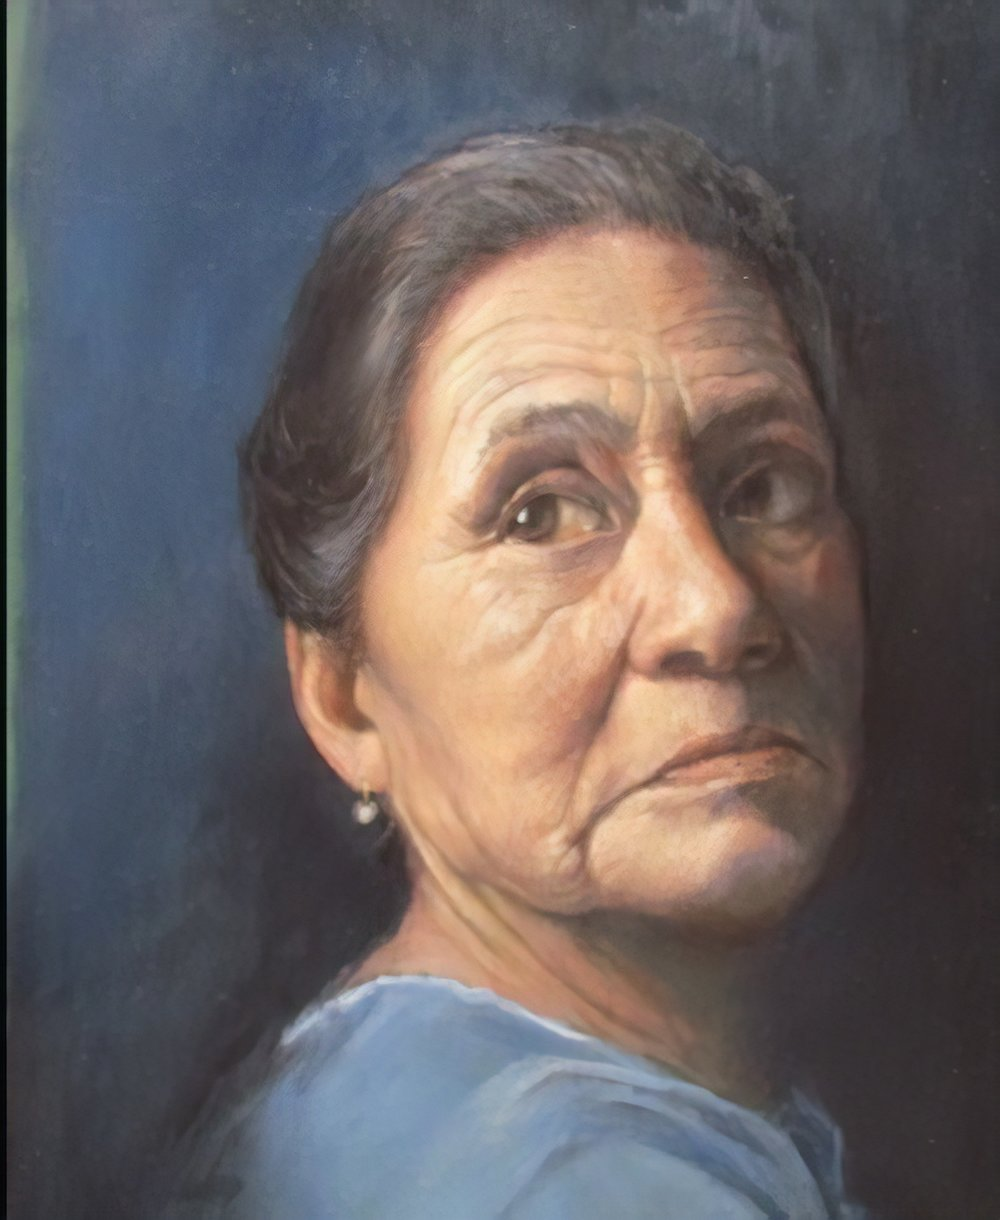 20496922-Barba, Margarita, 2011, oil on metal, 45x30cm, $2000.jpg